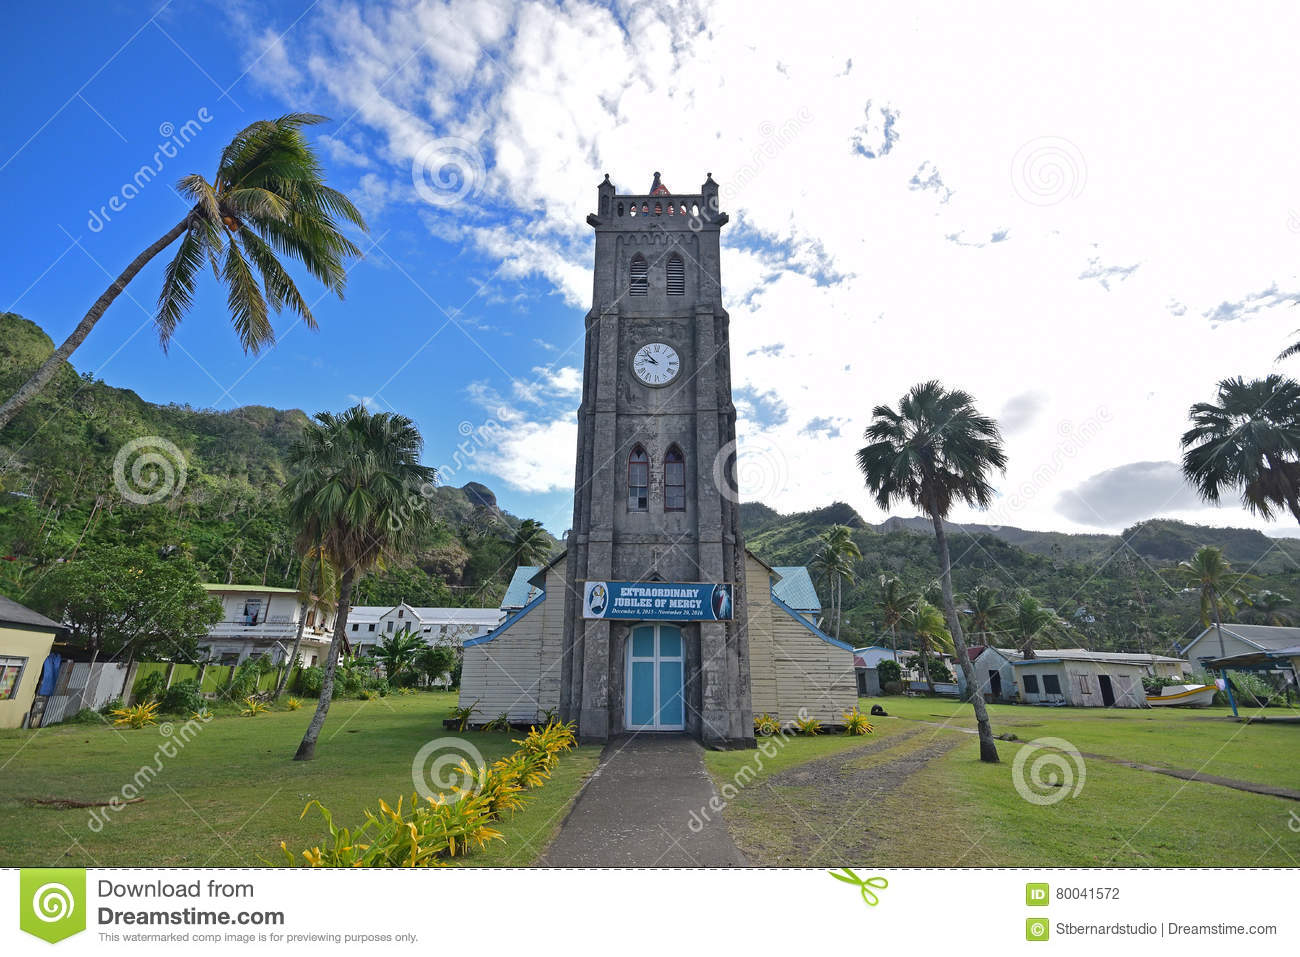 Dunk Island Has Been Rebuilt: An Old Building In Levuka, Ovalau Island, Fiji Which Is